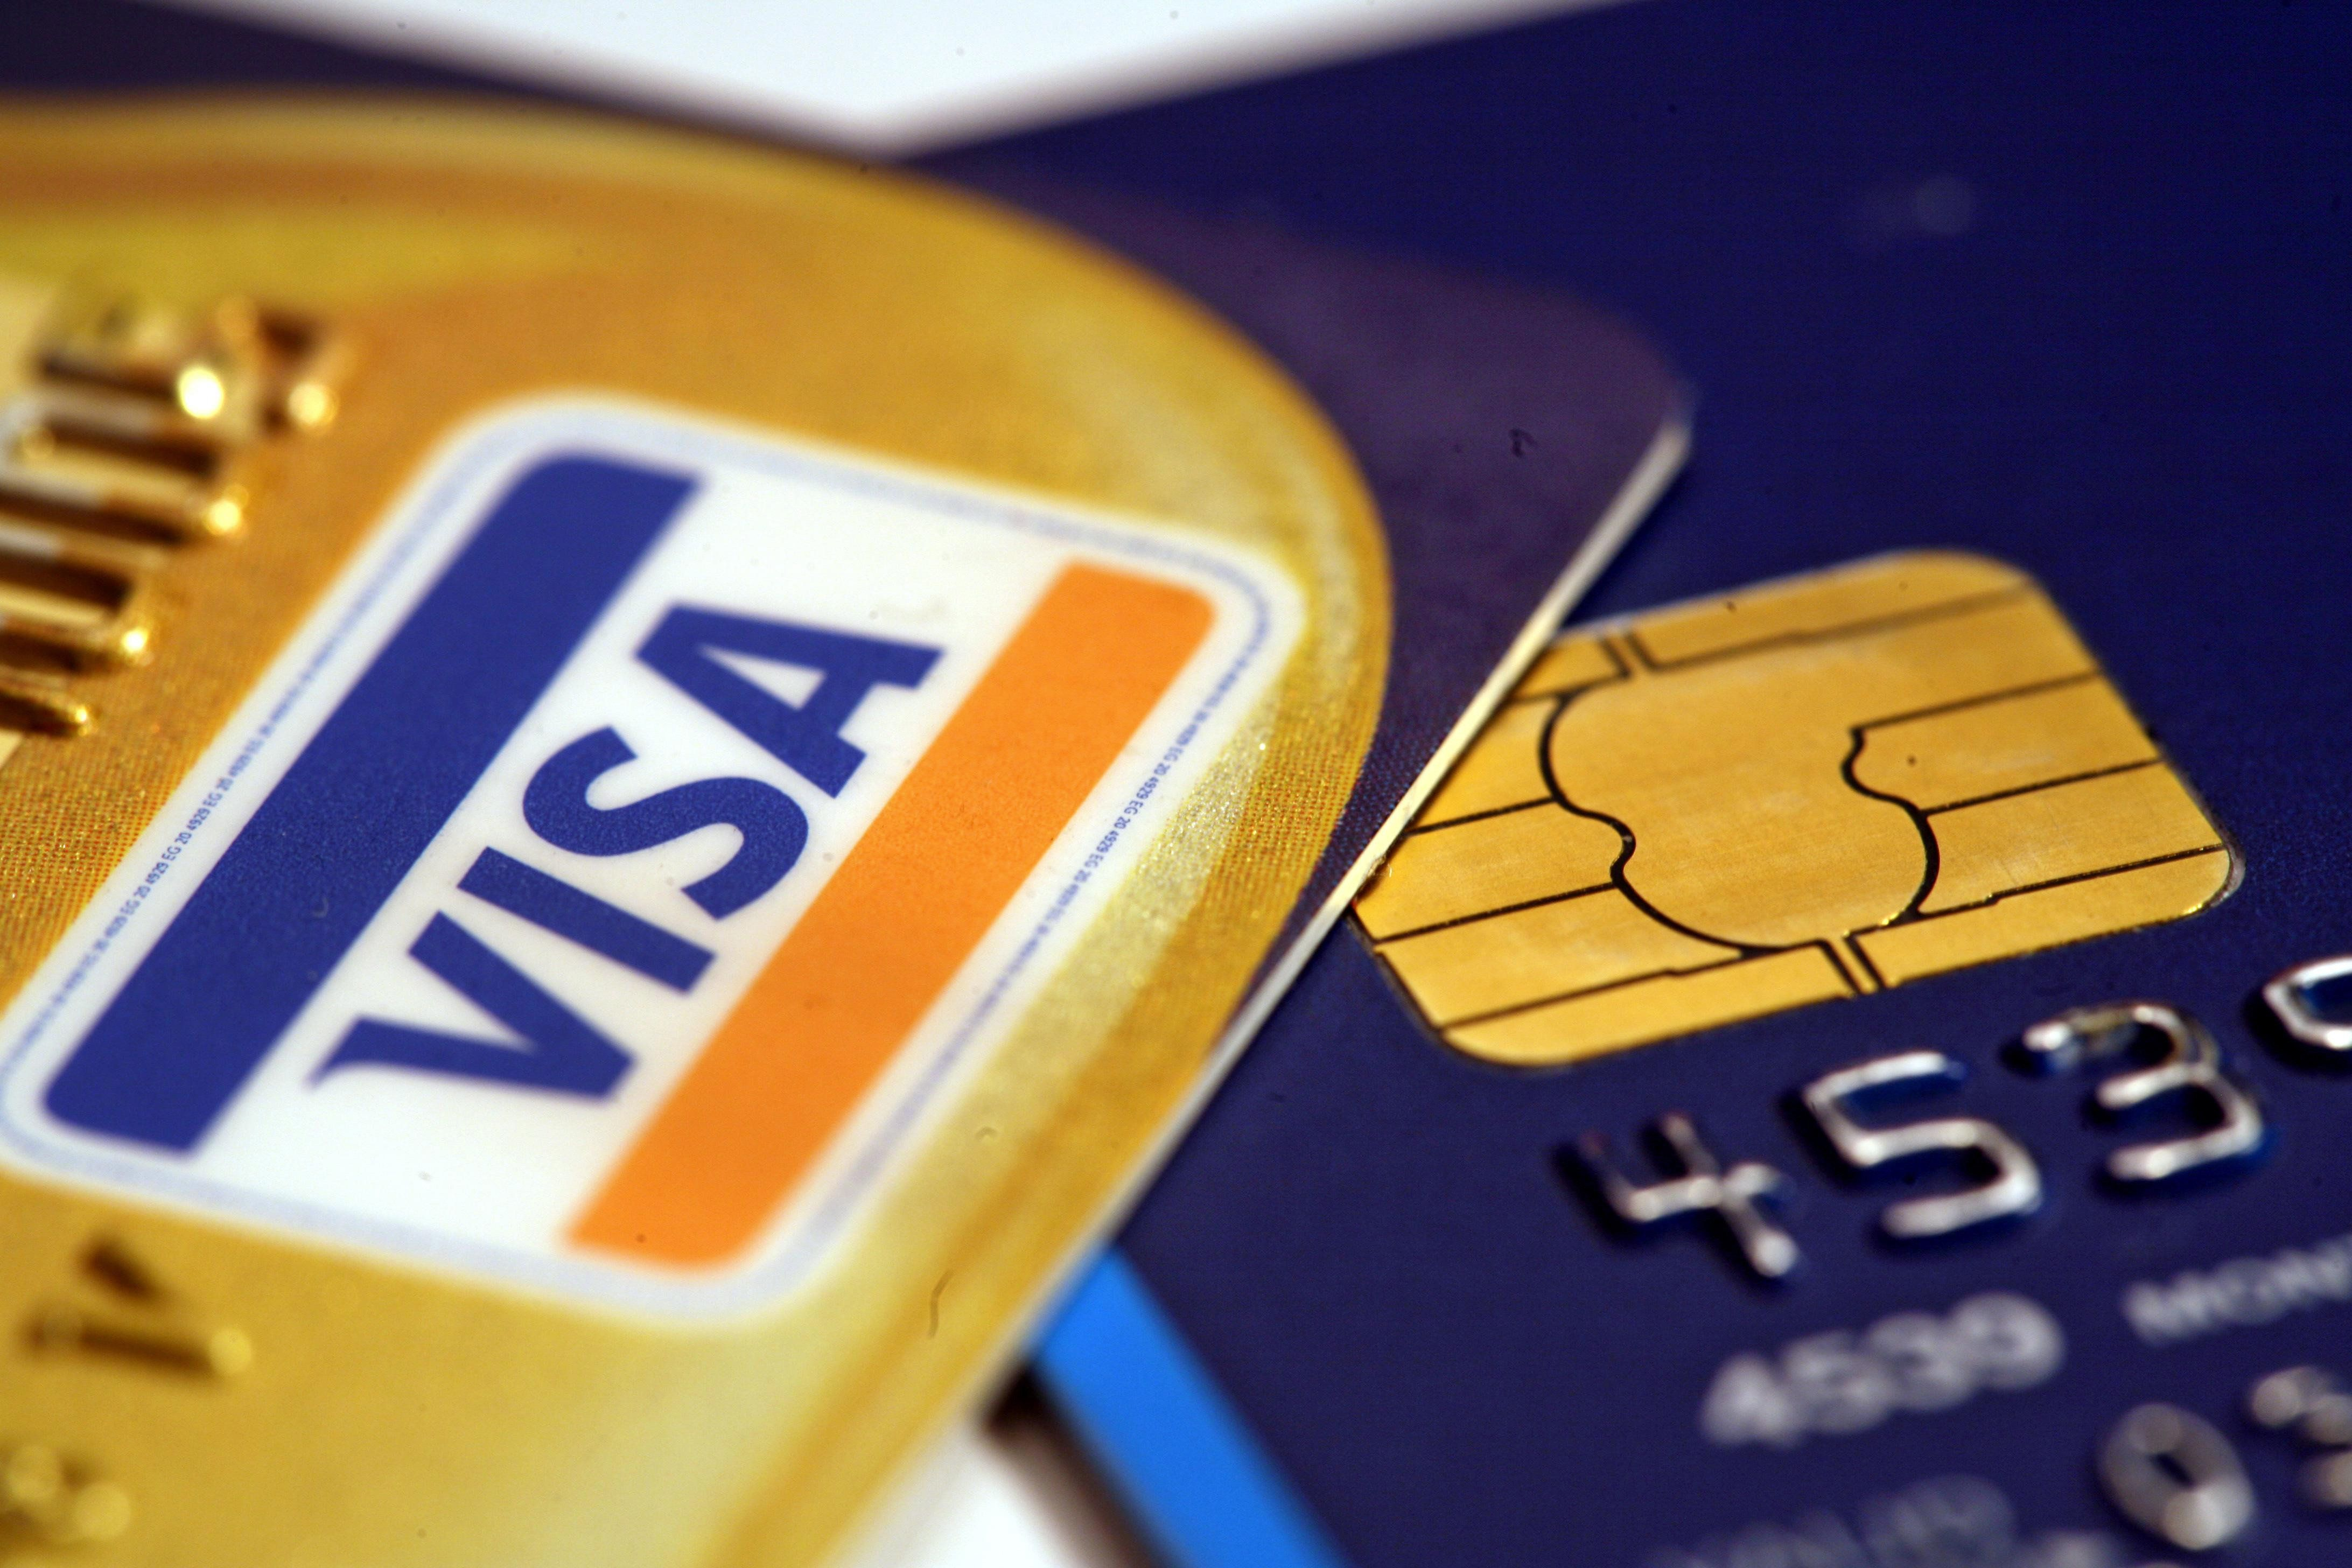 Visa Apologises To Customers For System Failure That Saw Services 'Fall Well